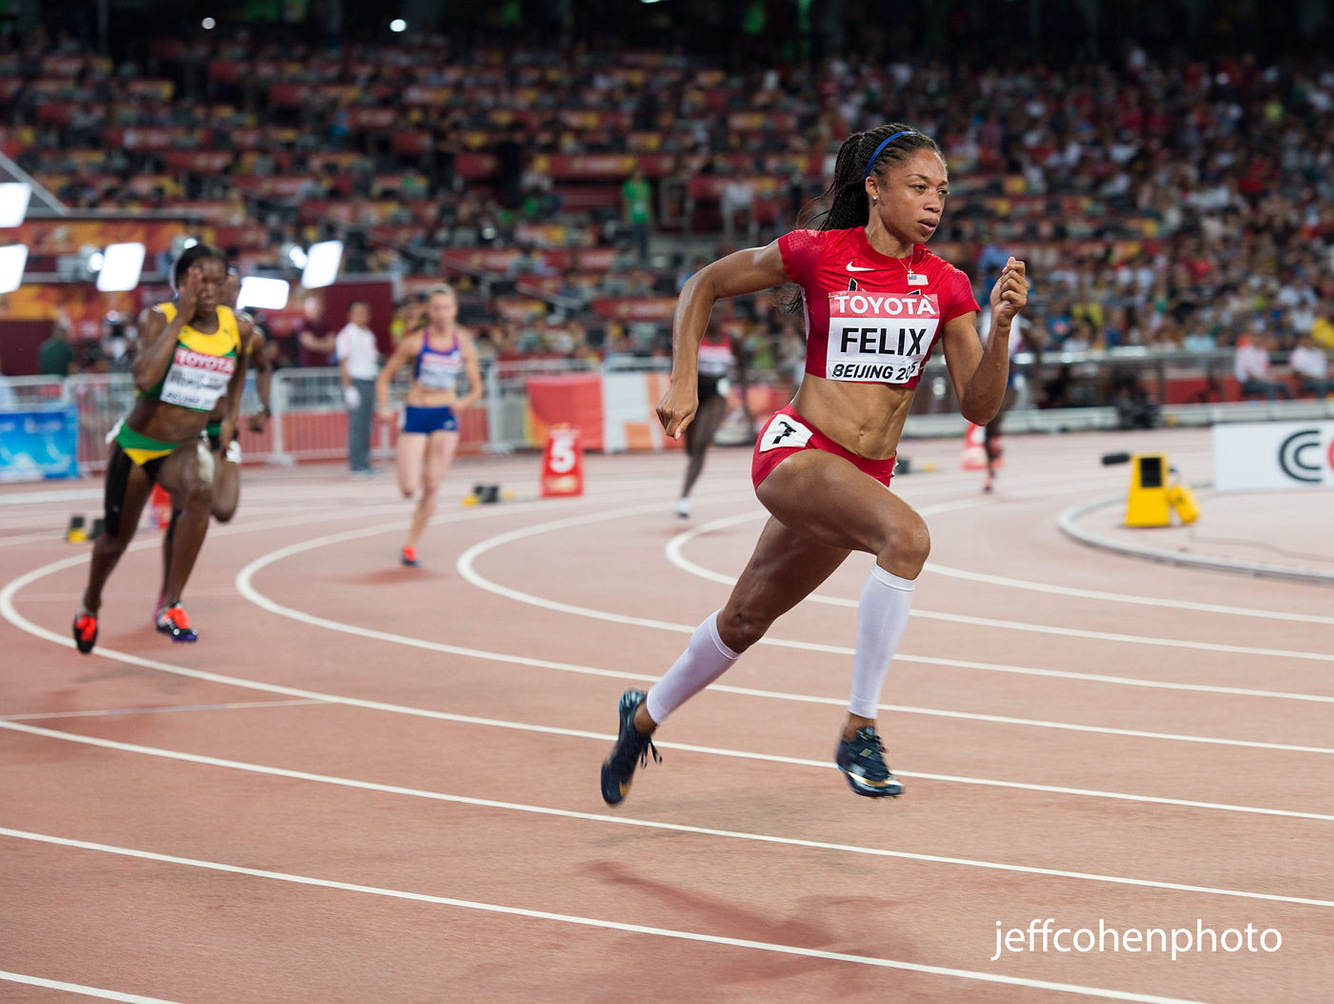 1beijing2015_night_4_felix_400m_semis_jeff_cohen_photo_16584_web.jpg